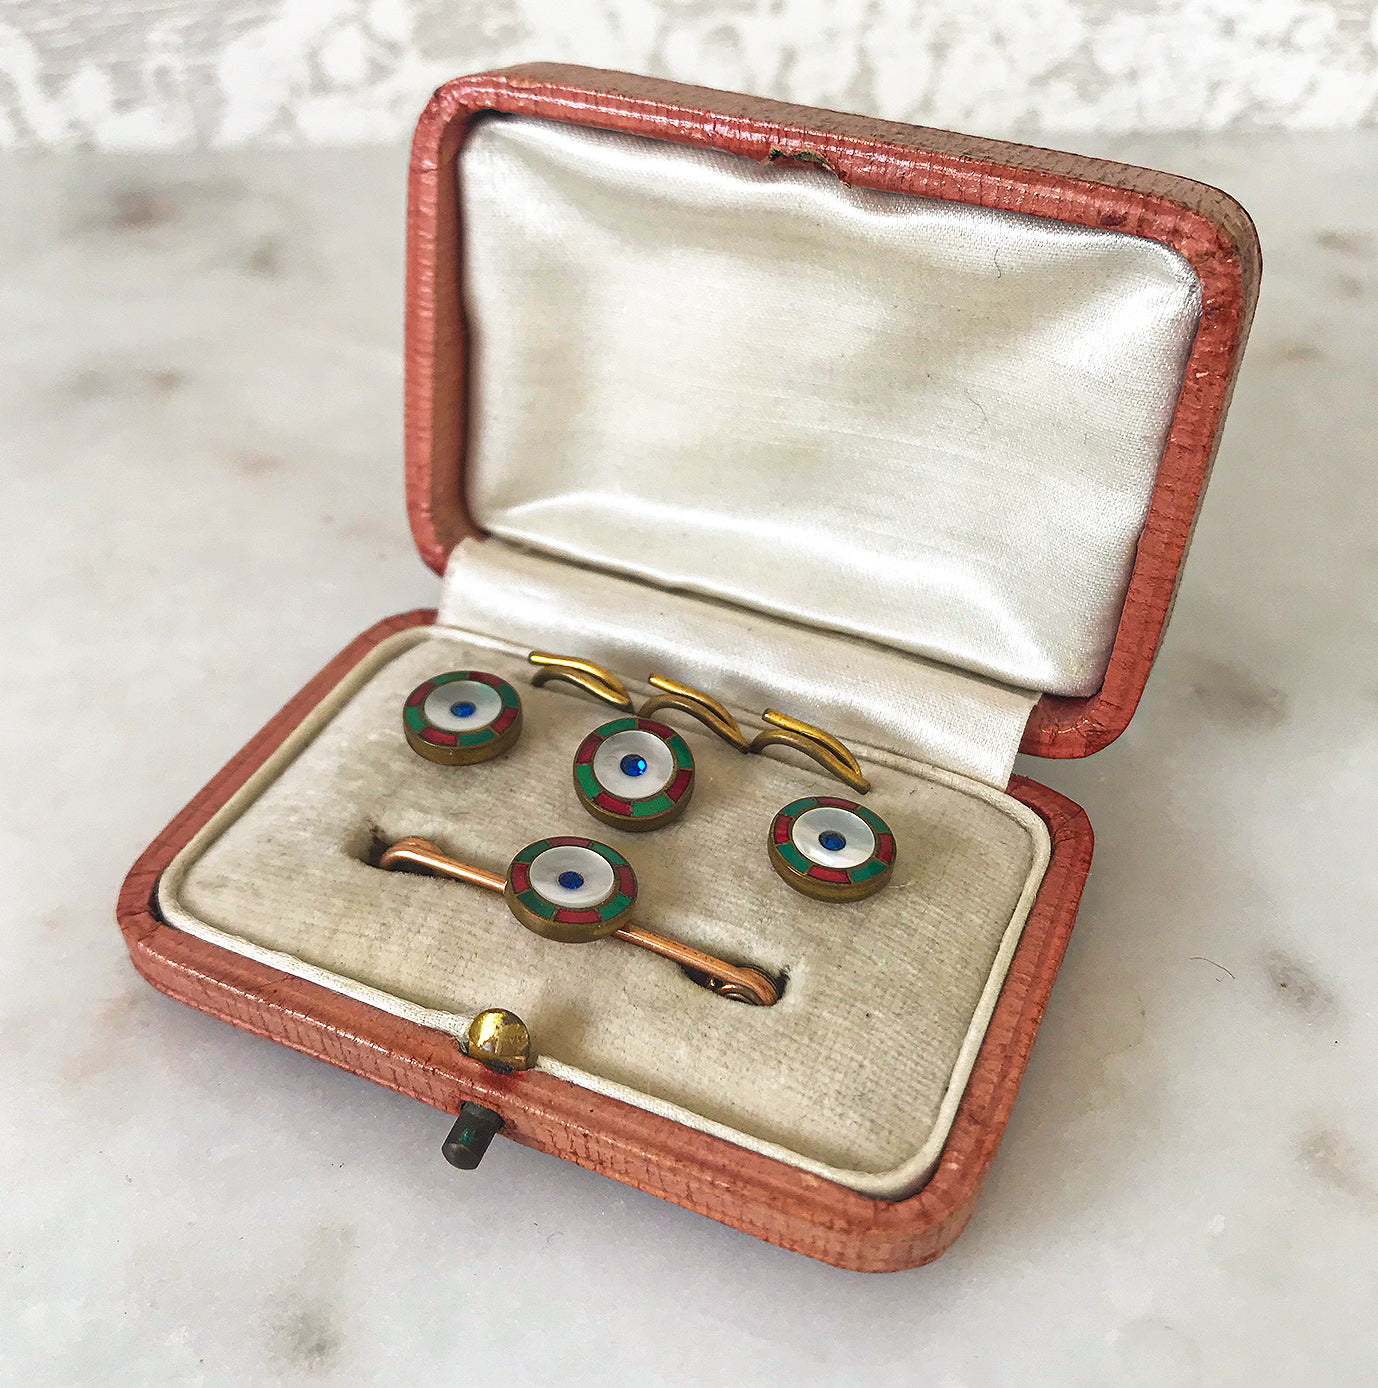 A smart matching set of 3 vintage gents dress buttons along with matching stock pin and 3 fastening loops, all in their original red presentation box - SHOP NOW - www.intovintage.co.uk